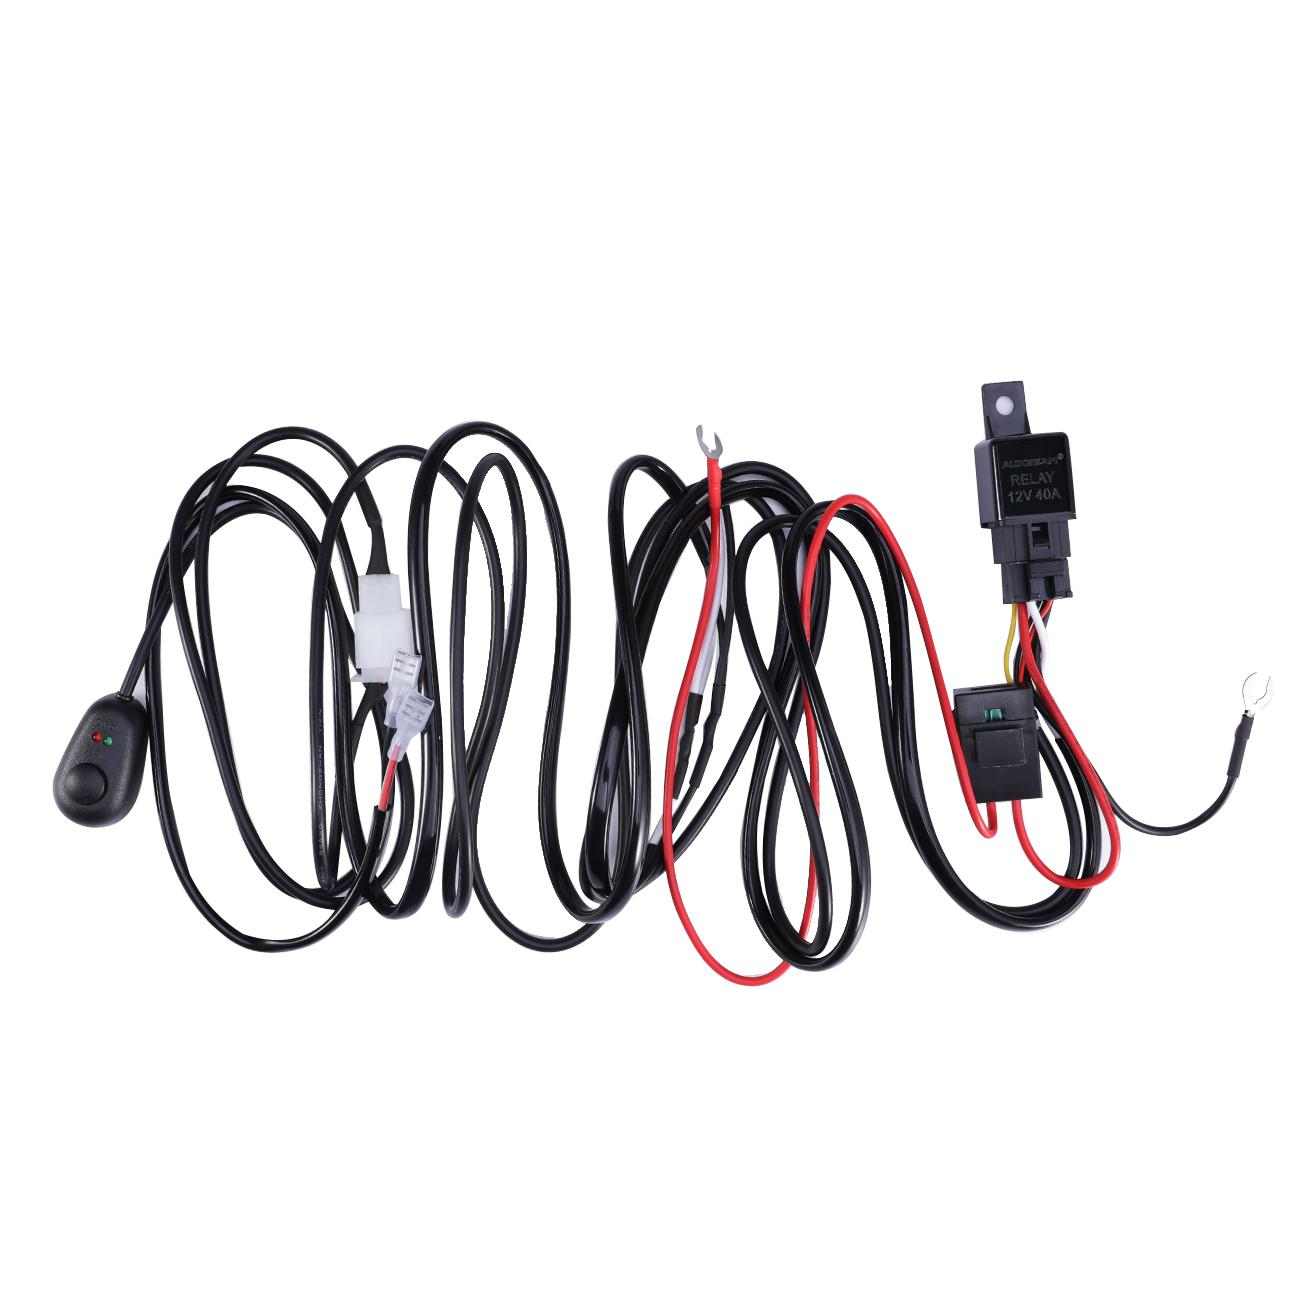 12v 40a Led Light Bar Driving Light Wiring Loom Harness